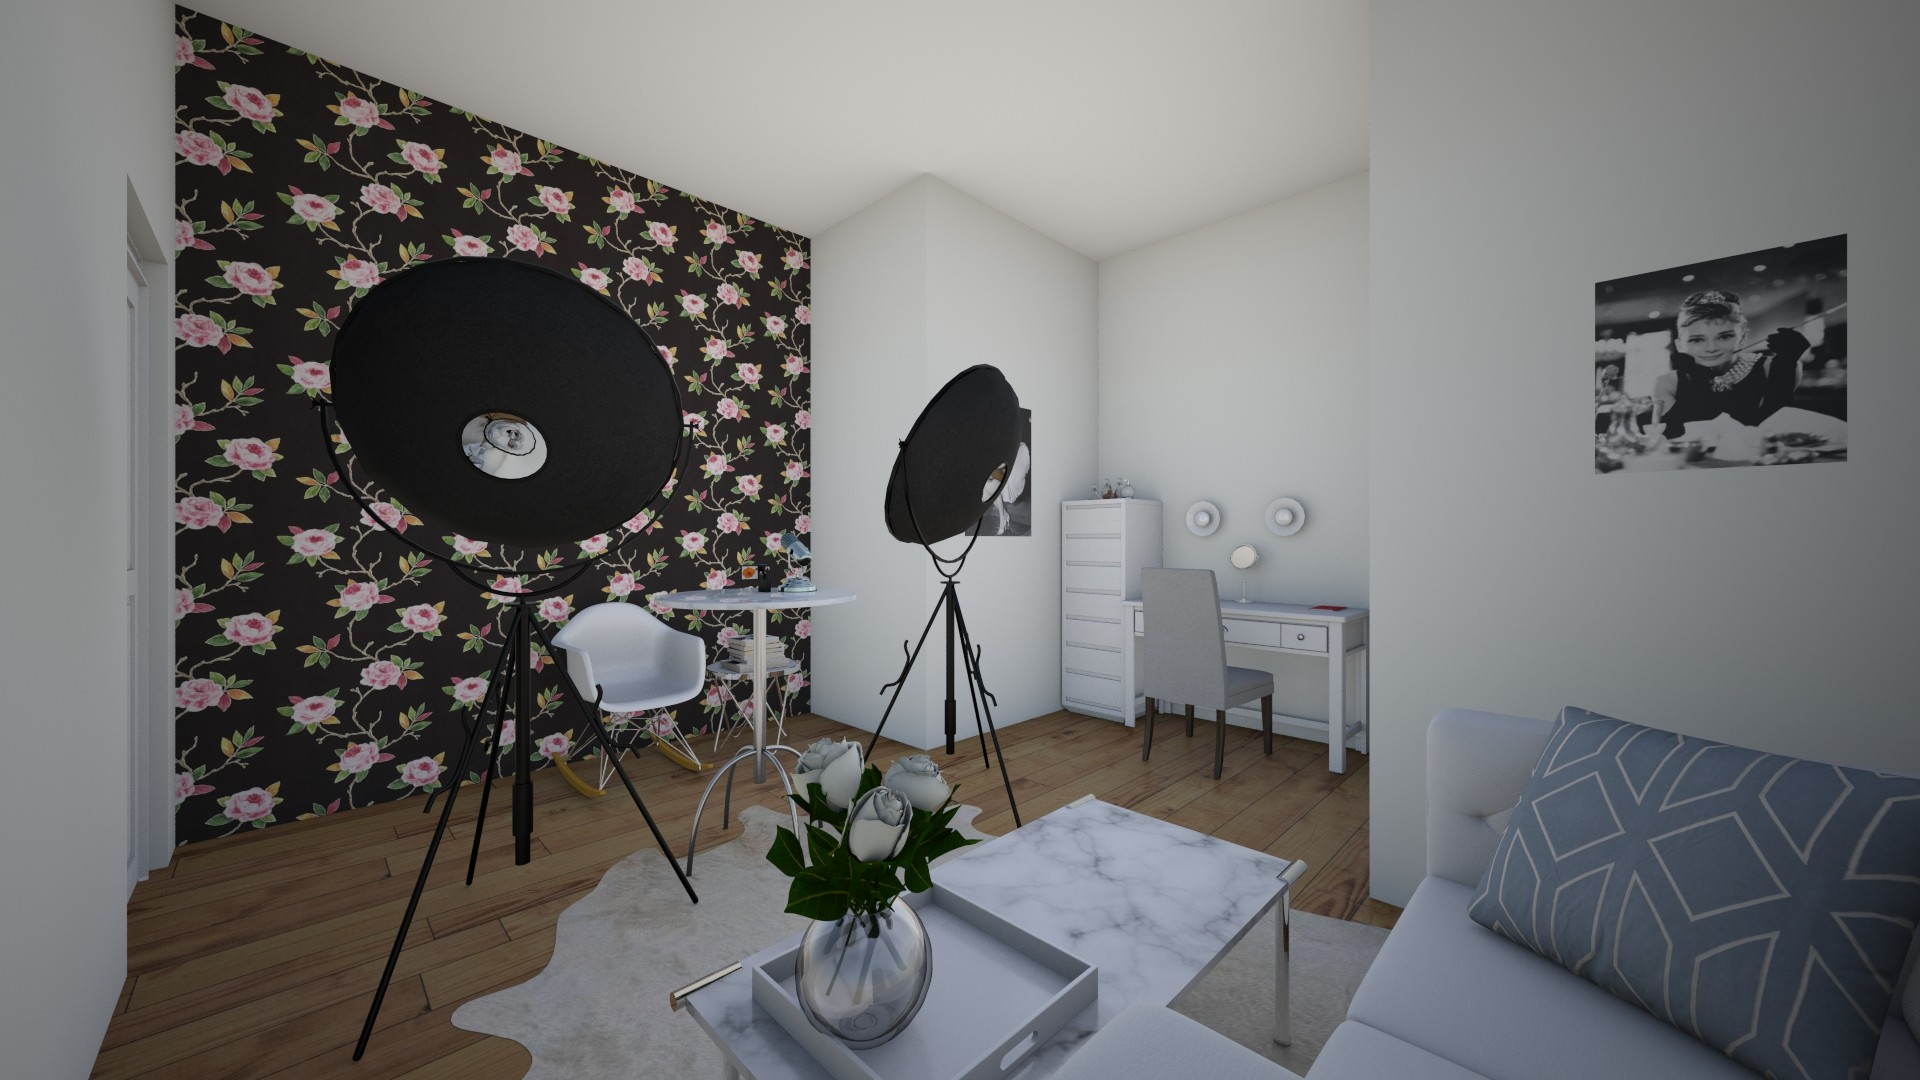 Filming Room - by Khyra